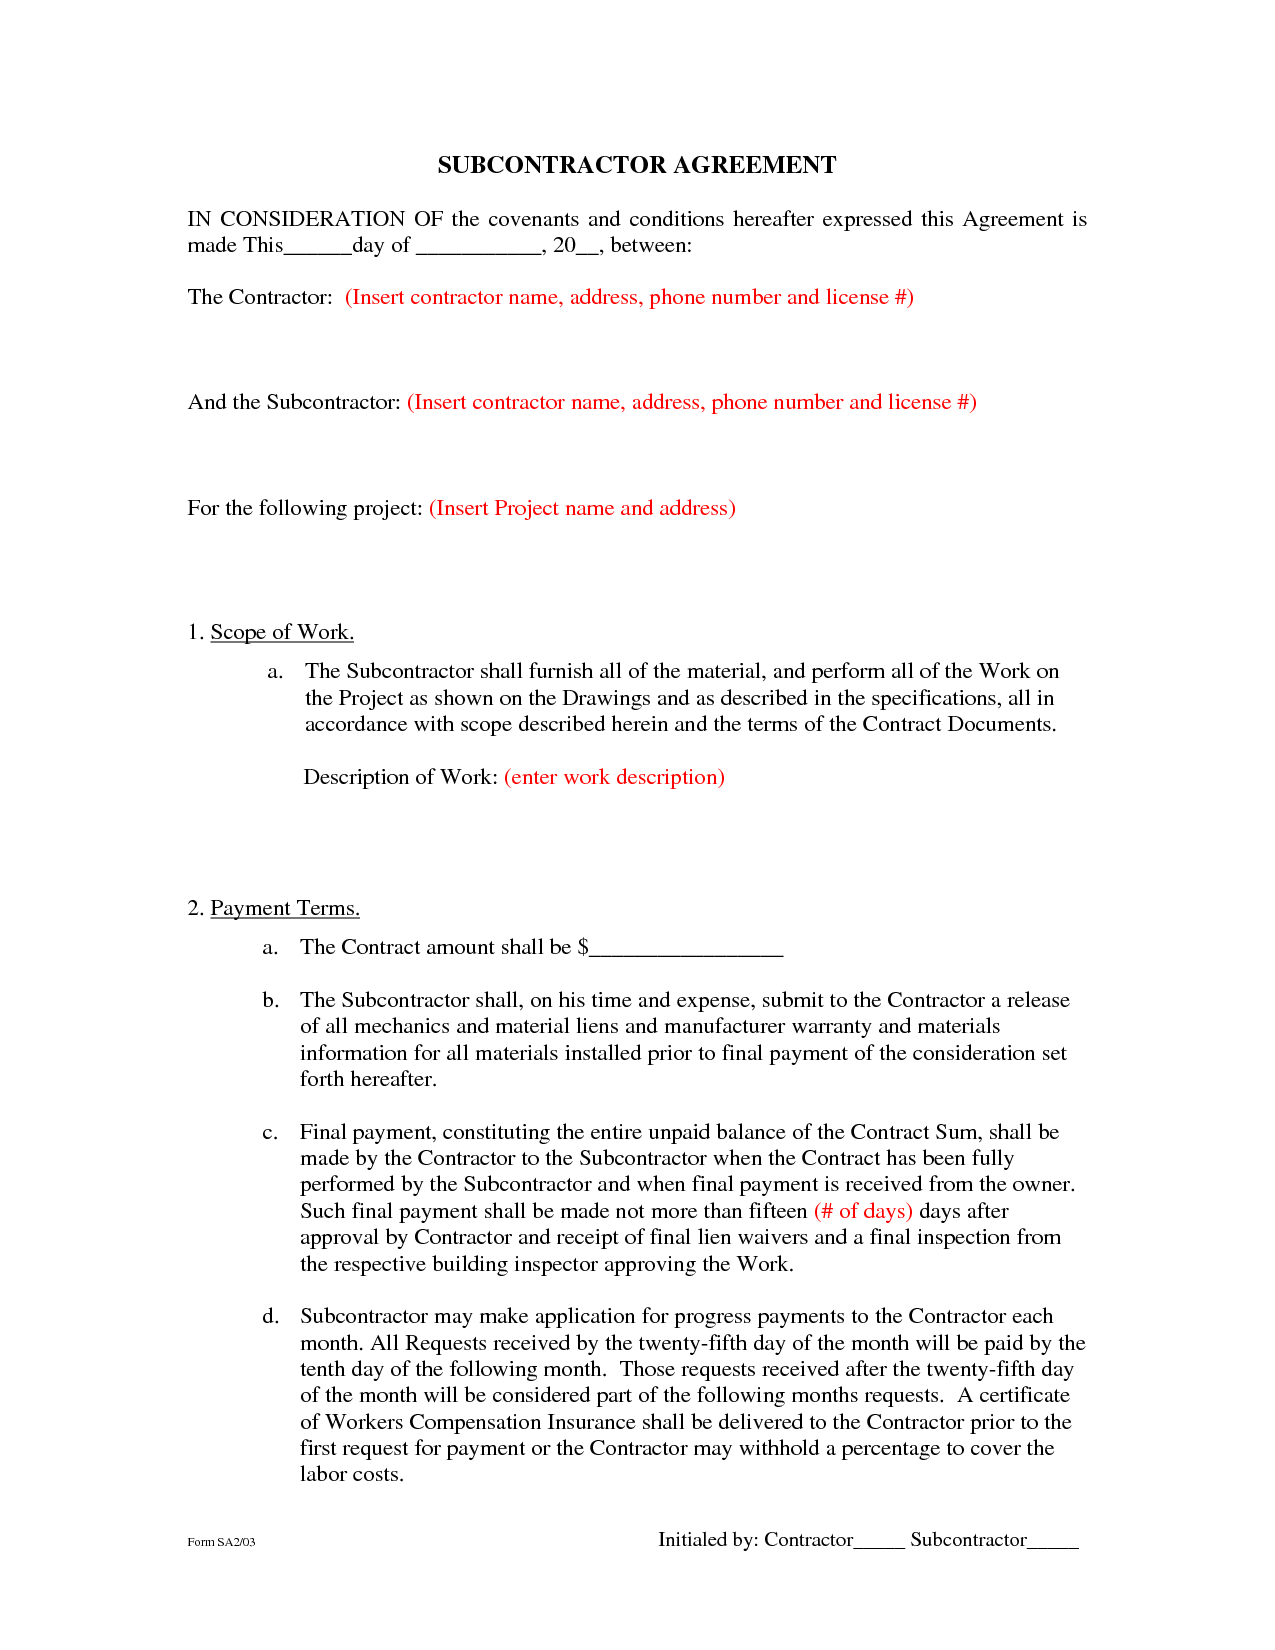 Subcontractor Agreement Forms By Beunaventuralongjas Subcontractor